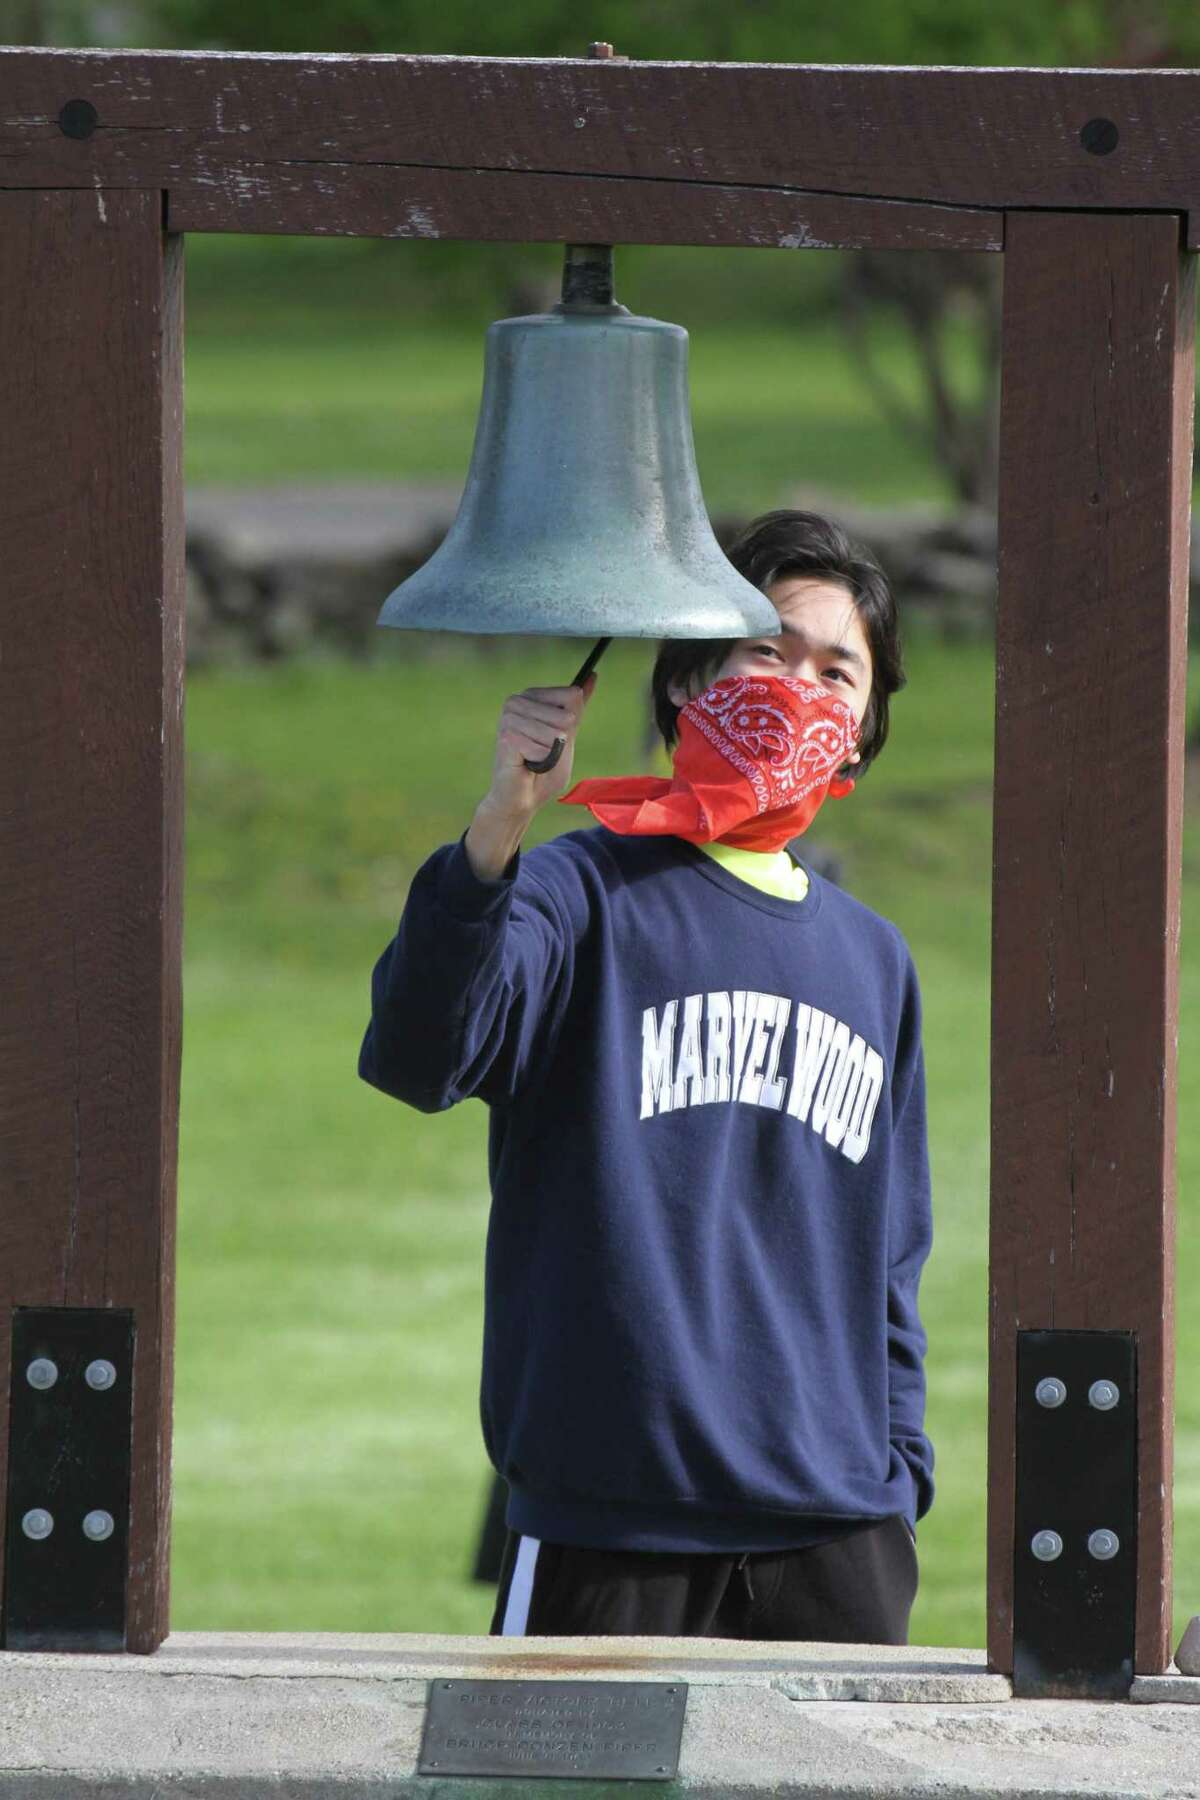 Marvelwood School in Kent recently held a virtual commencement exercise for its class of 2020. David Ma of Kent, student body president and valedictorian, ran the Piper Victory Bell in honor of all his classmates.